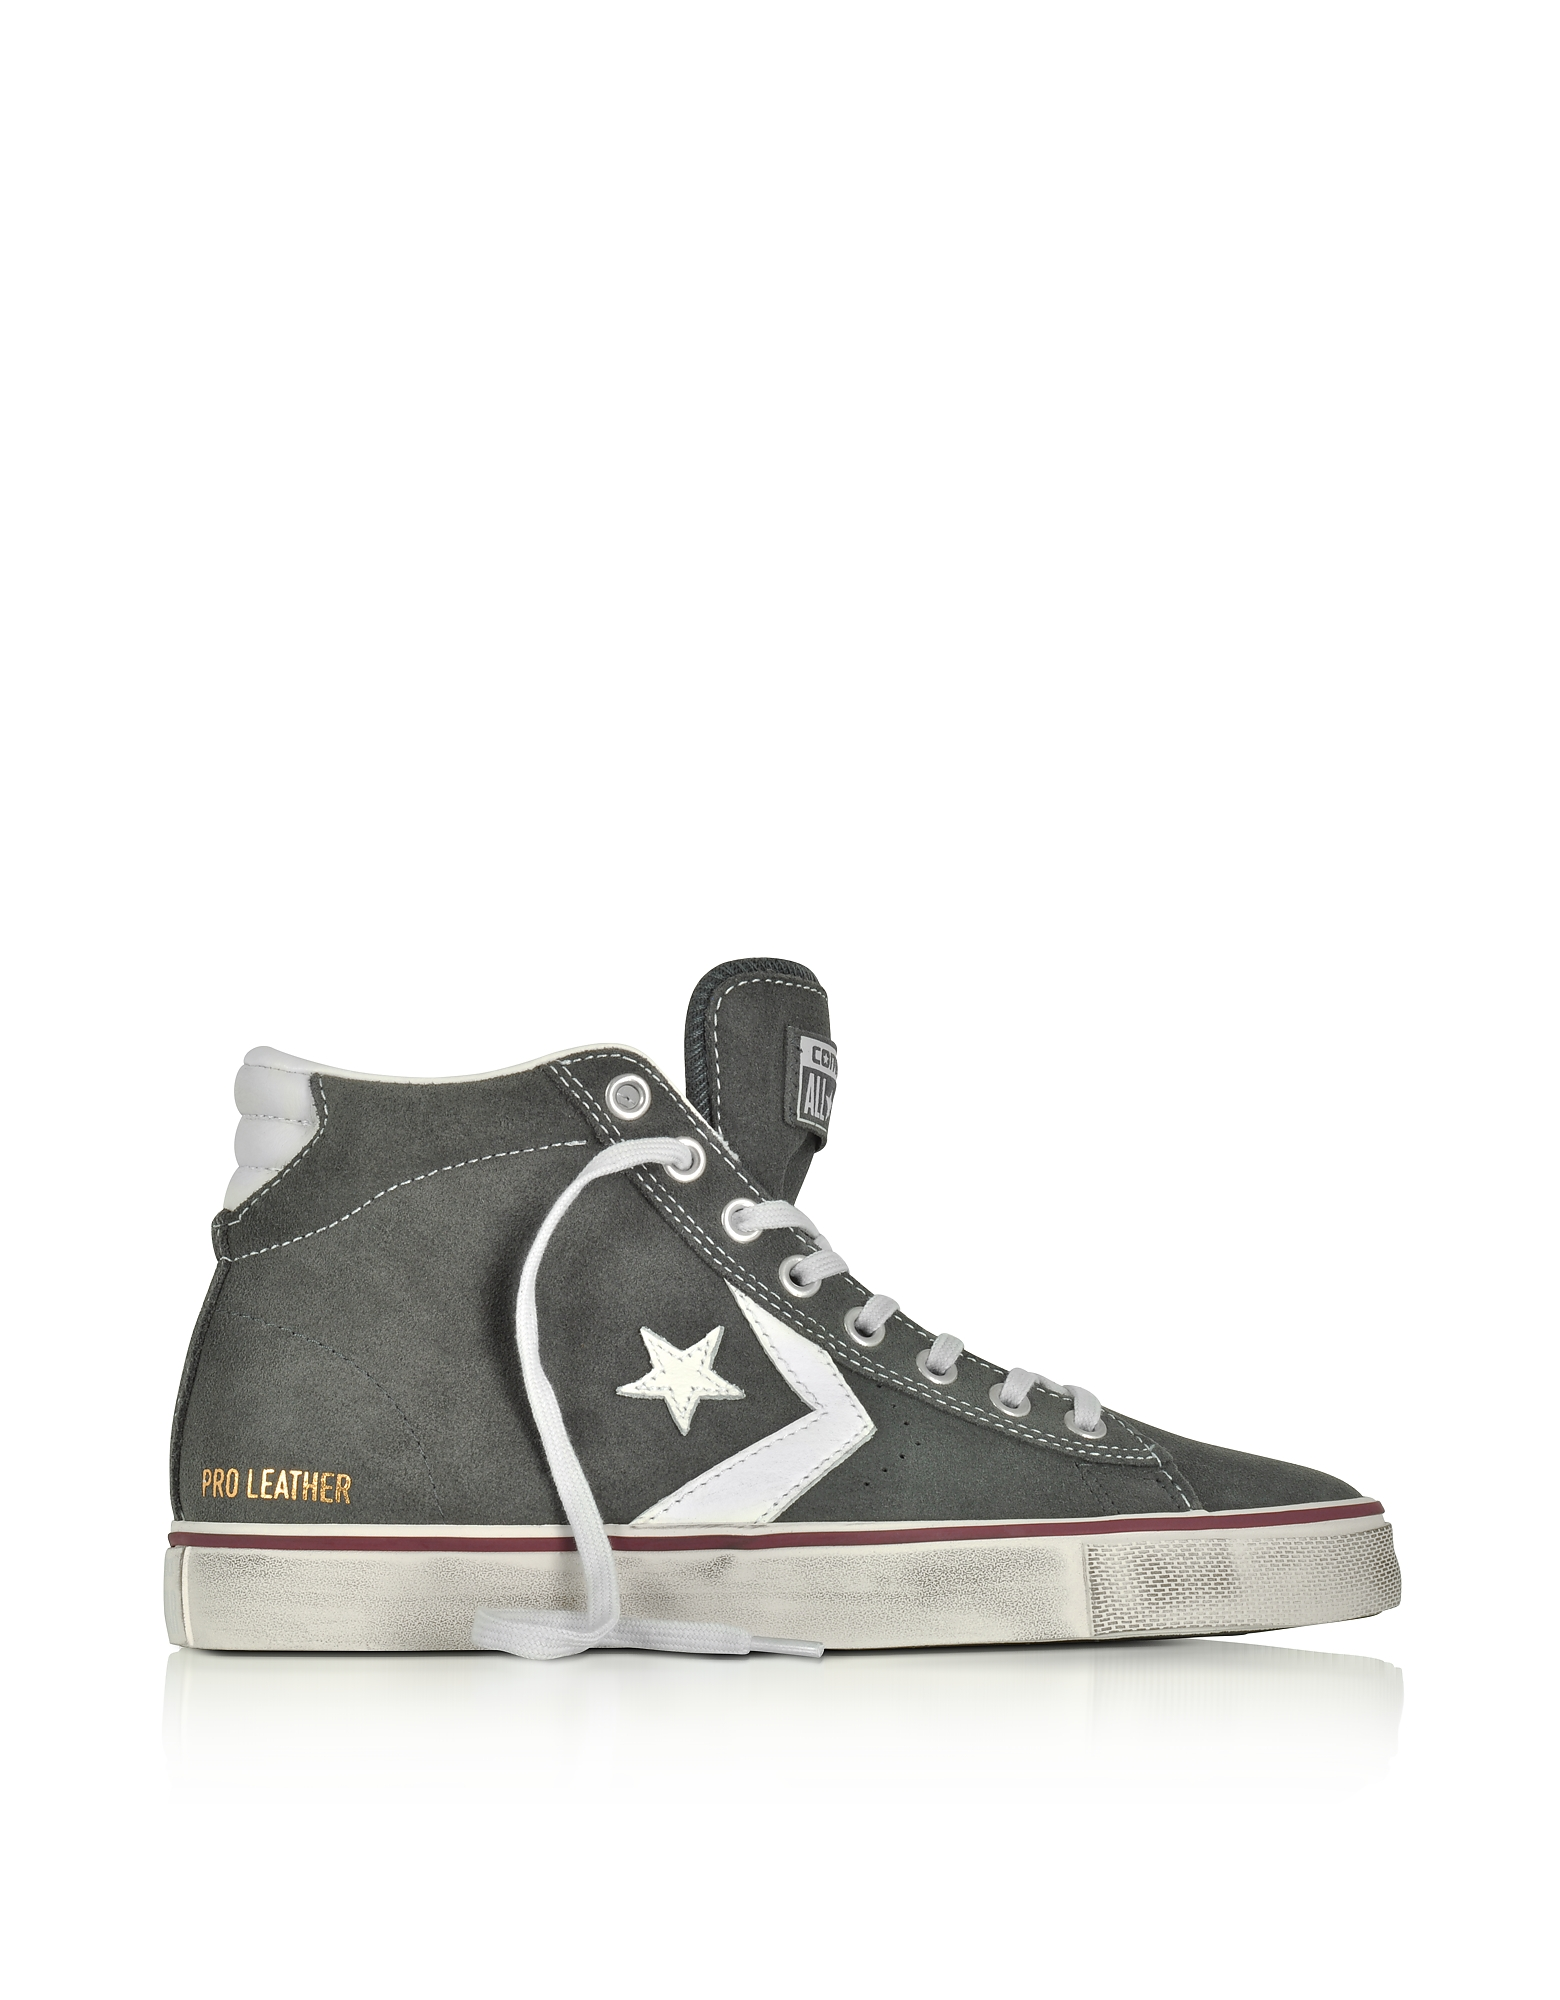 Converse Limited Edition Shoes, Pro Leather Vulc Mid Distressed Gray Suede Sneakers